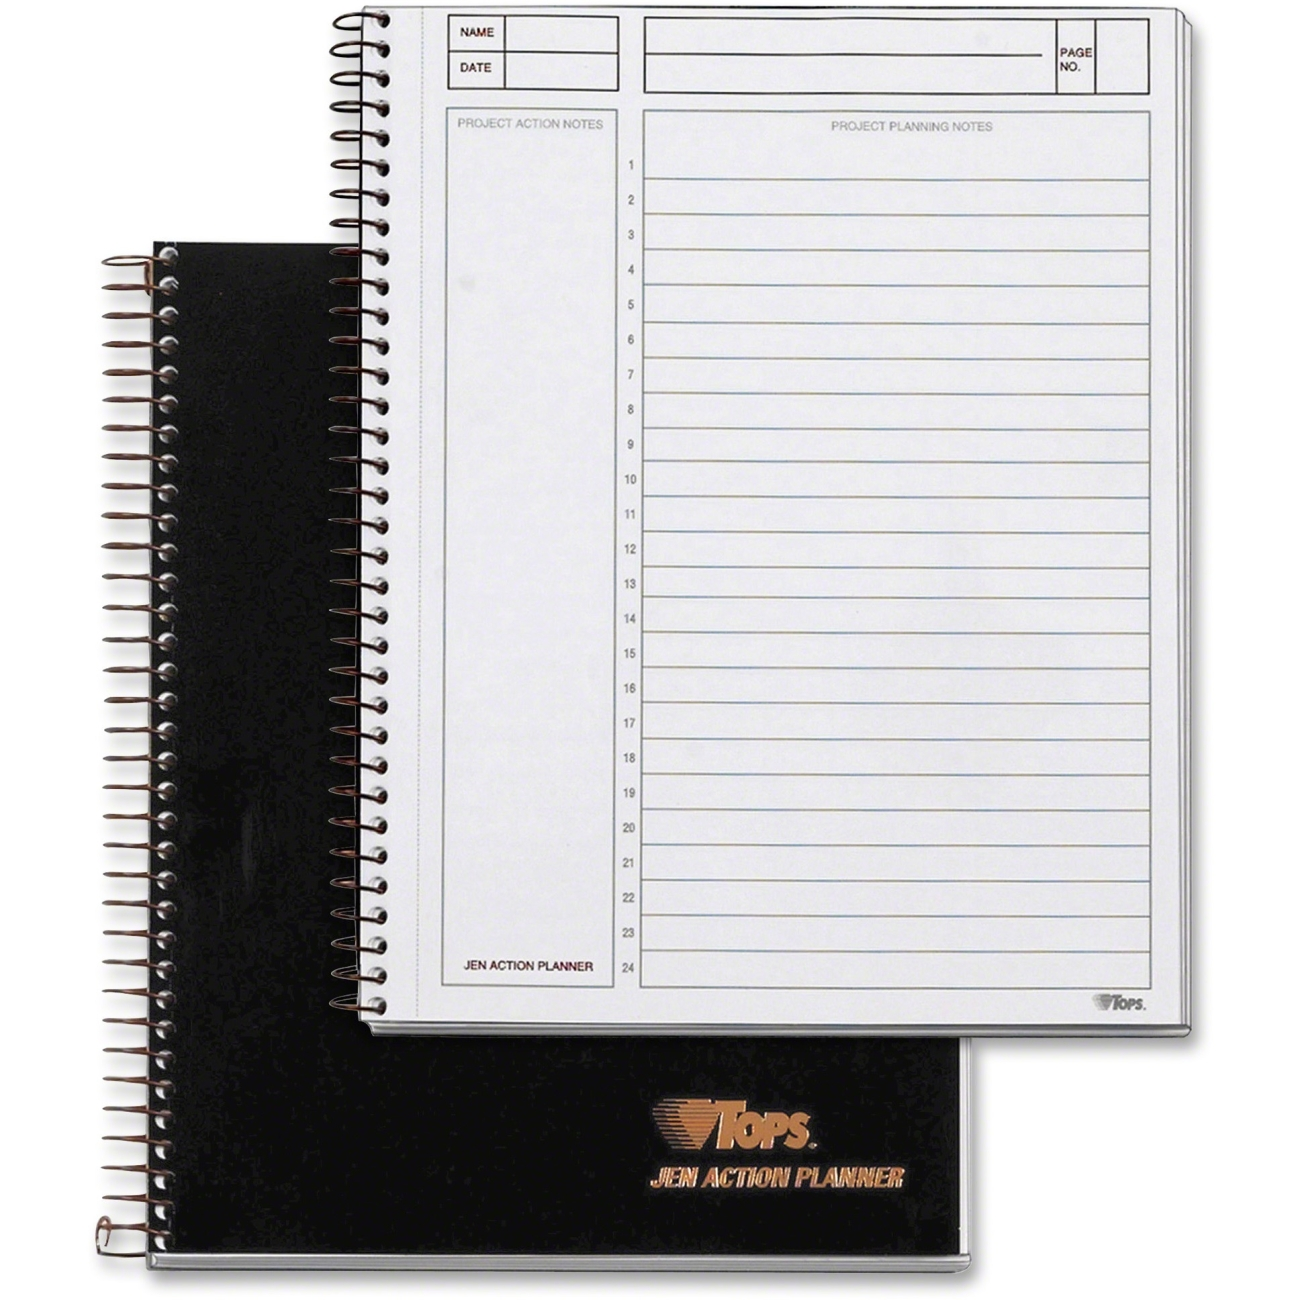 TOPS Products Calendars & Planners